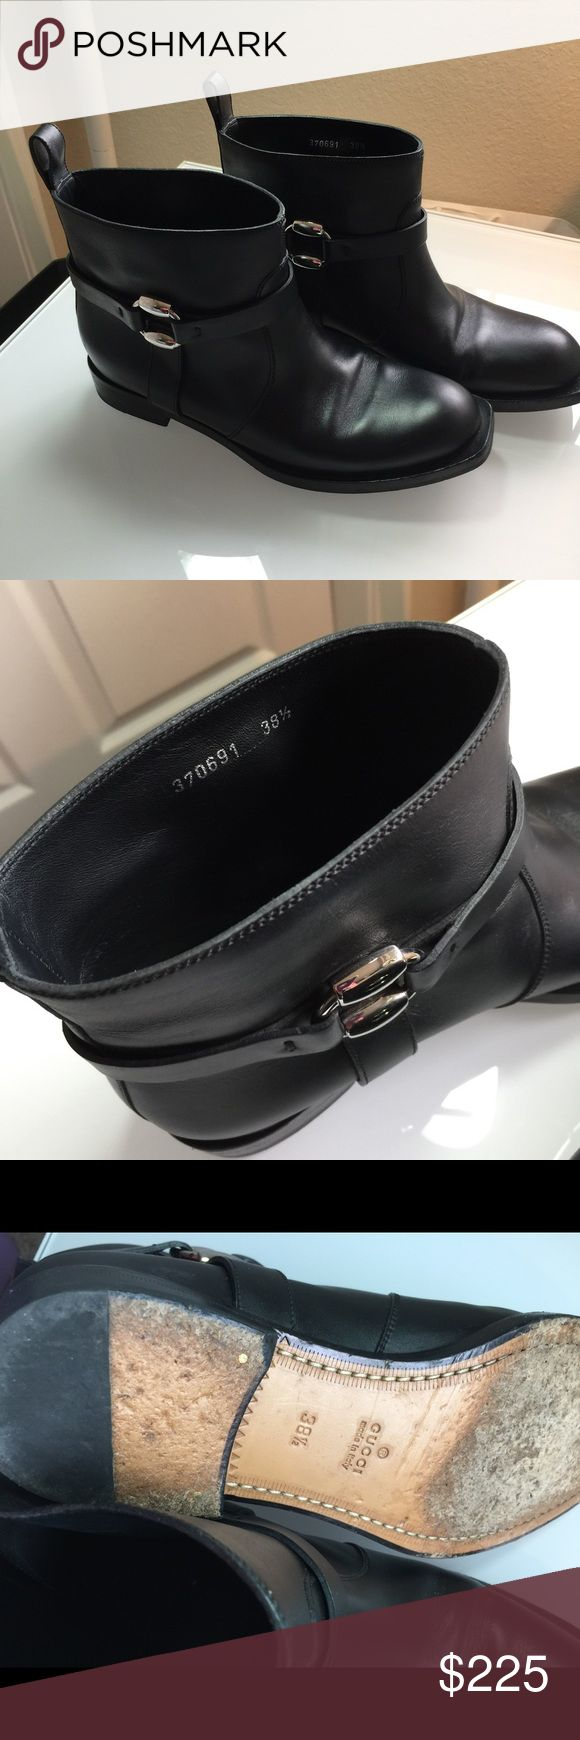 Gucci women's leather boots 7.5 The size is 38.5 this converts to 7.5 Excellent condition minor wear sole and a few small scuffs  I will polish them up 1.25 heel Gucci Shoes Ankle Boots & Booties